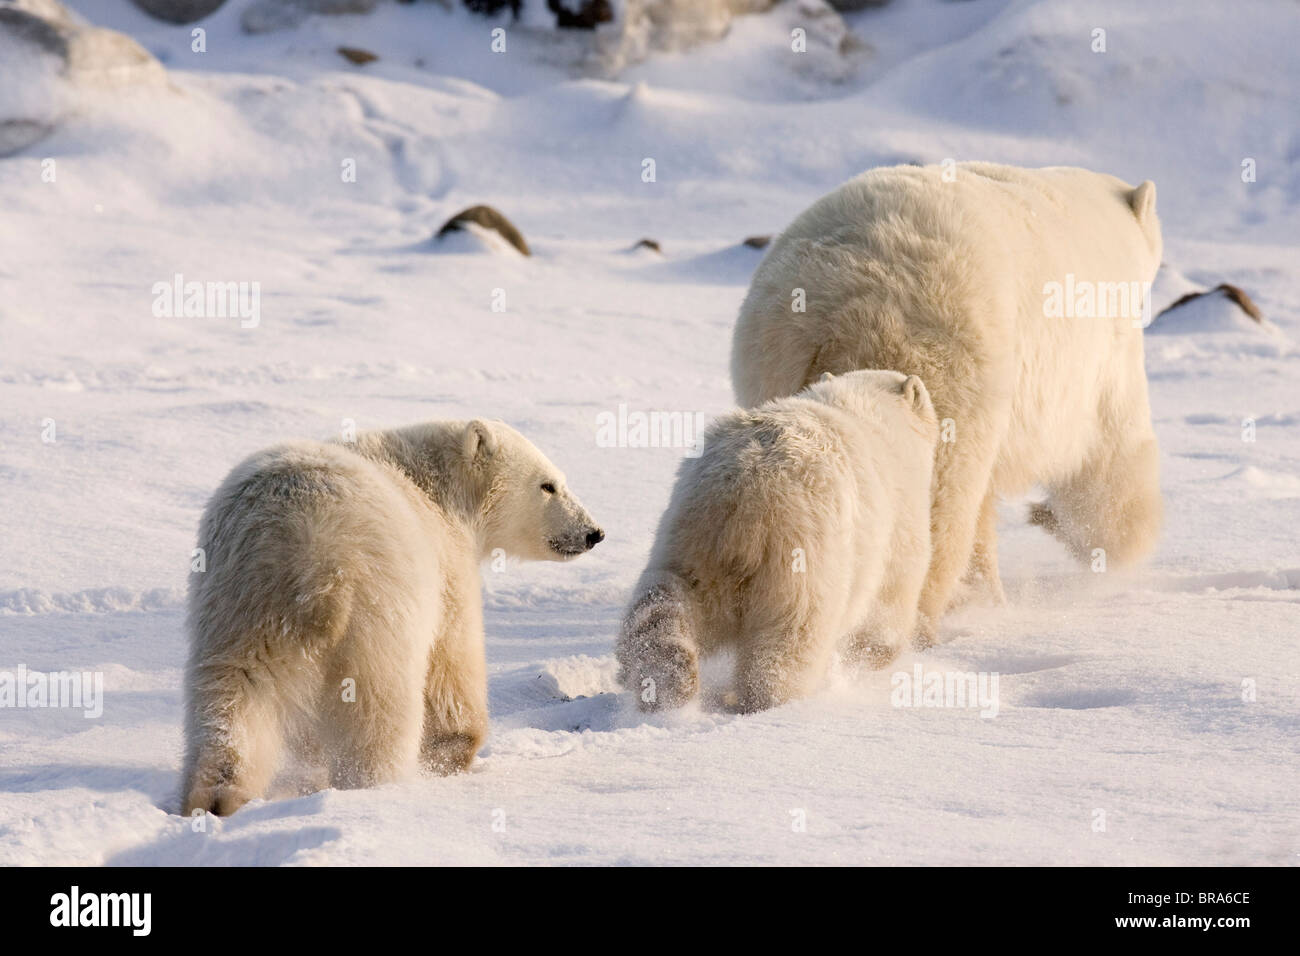 Canada, Manitoba, Hudson Bay, Churchill. Two polar bear cubs follow mother across snowy landscape. - Stock Image